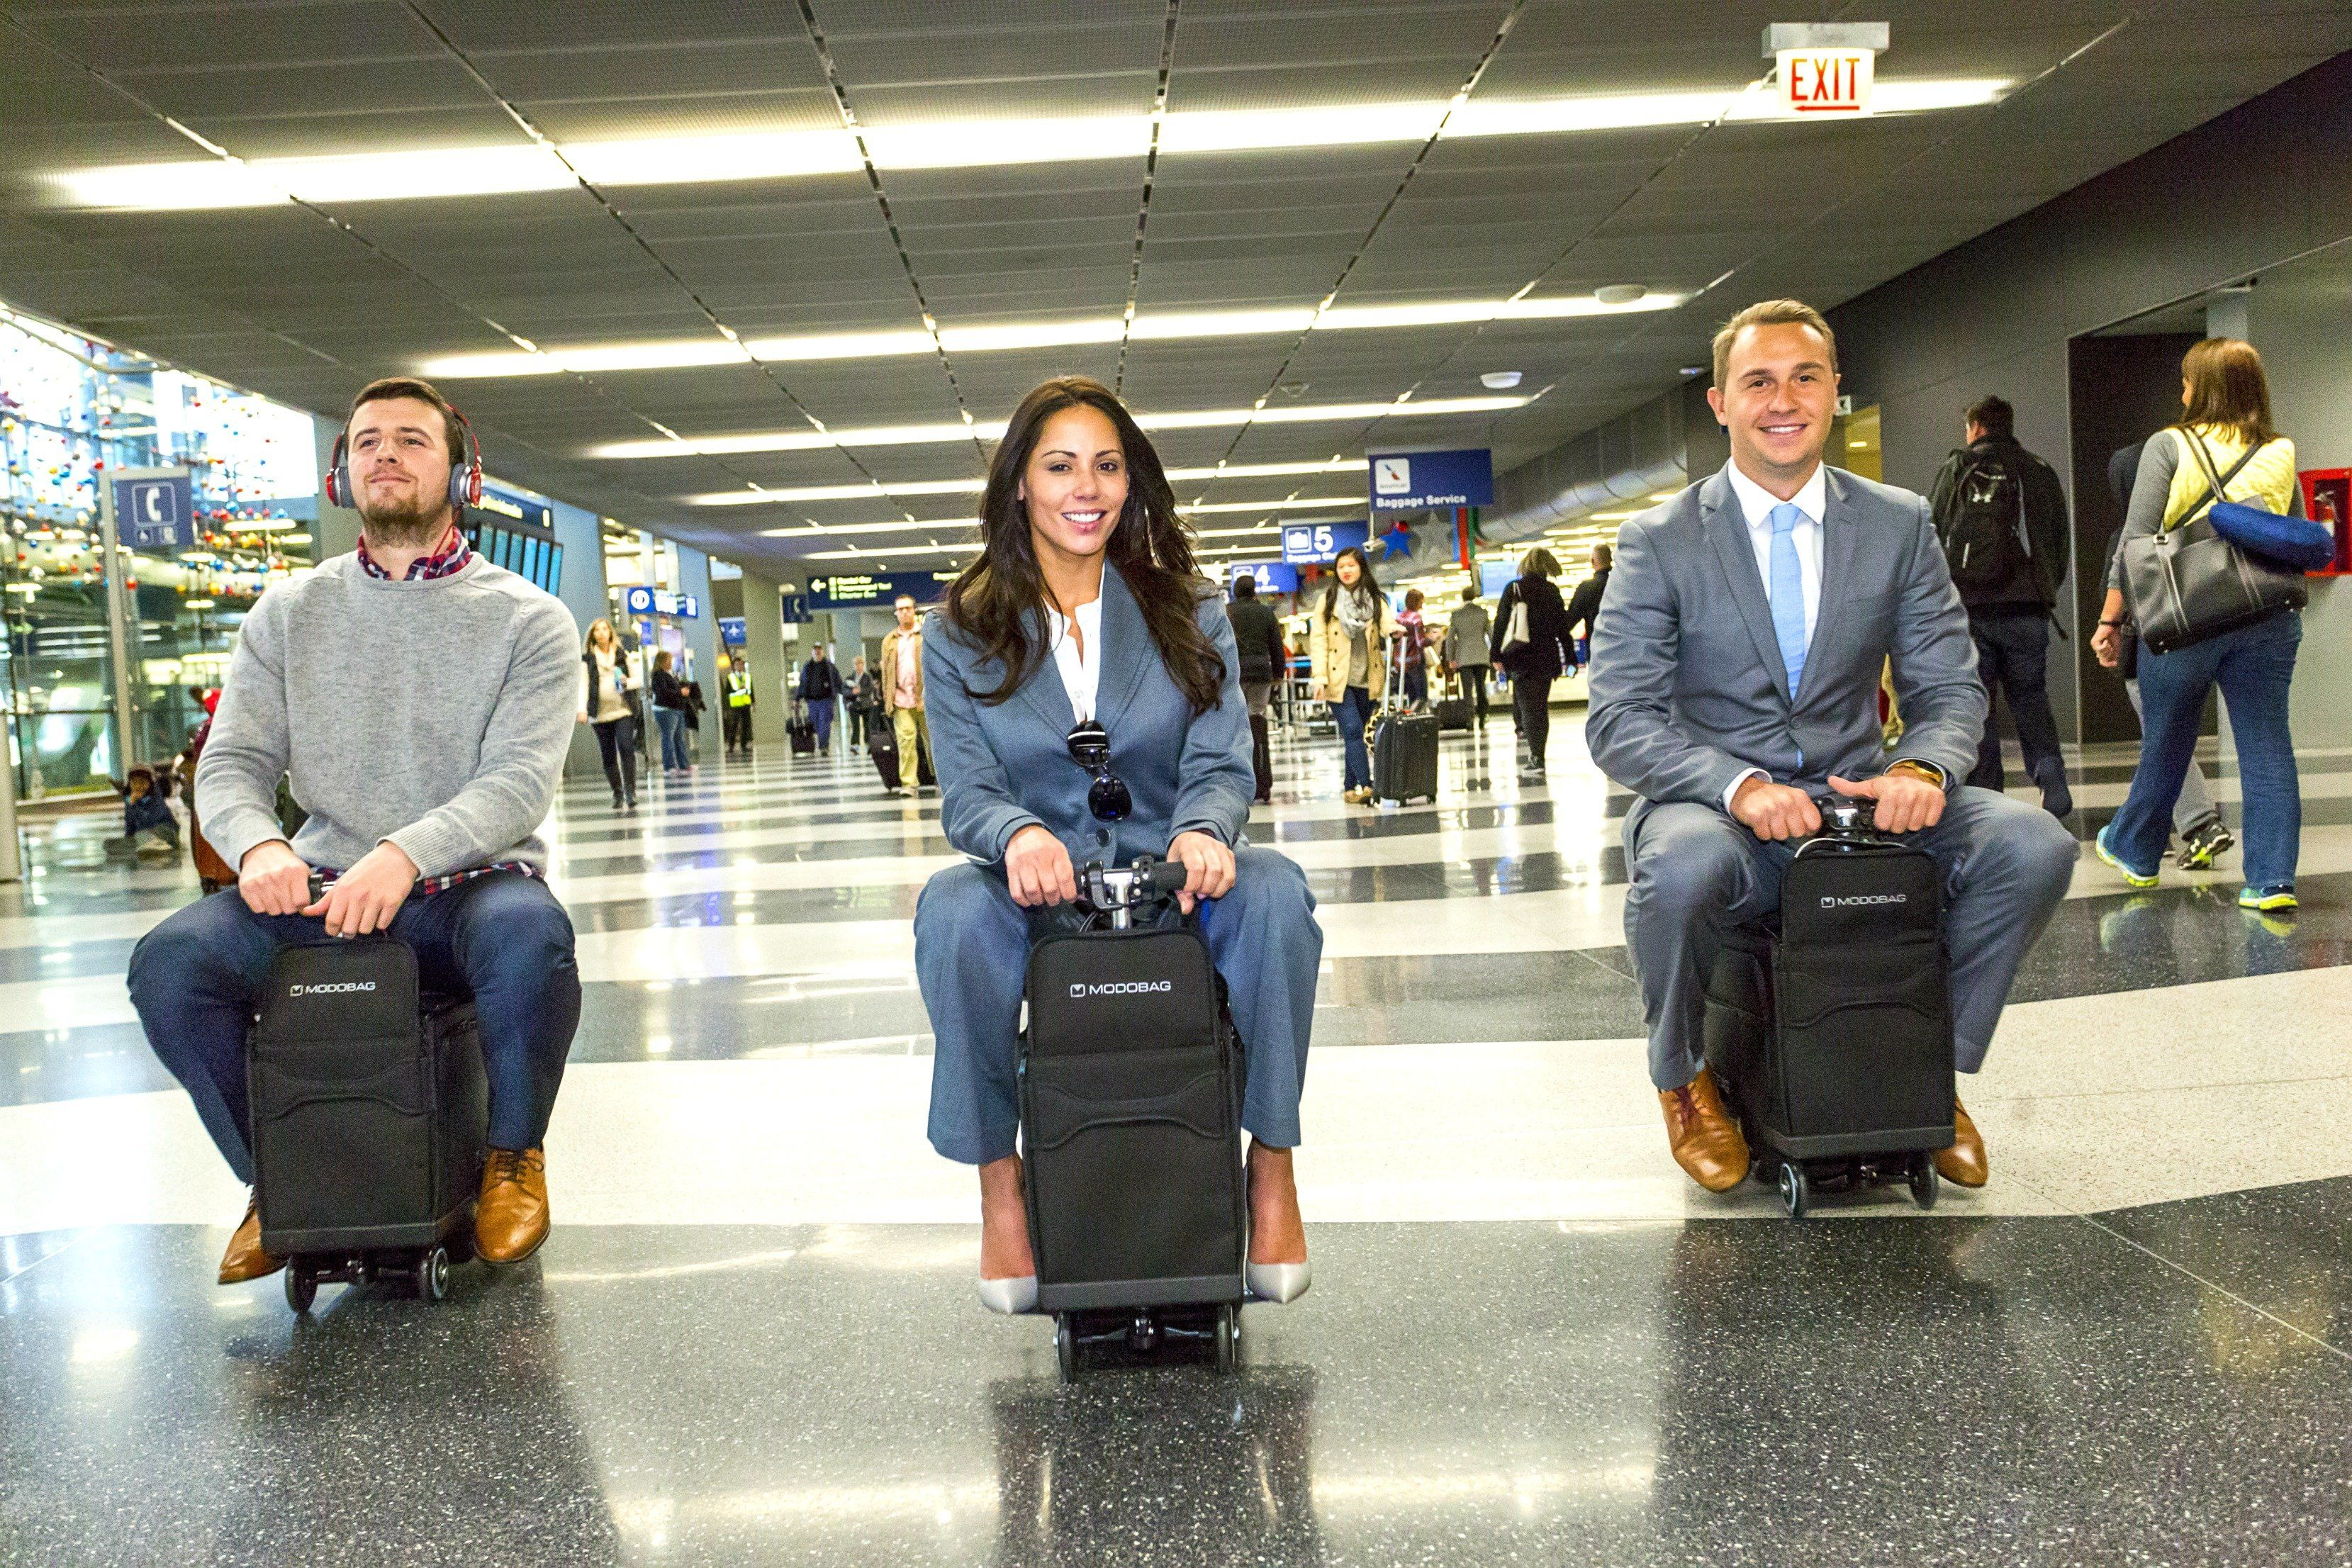 This Rideable Suitcase Has Got To Be The Greatest Airport